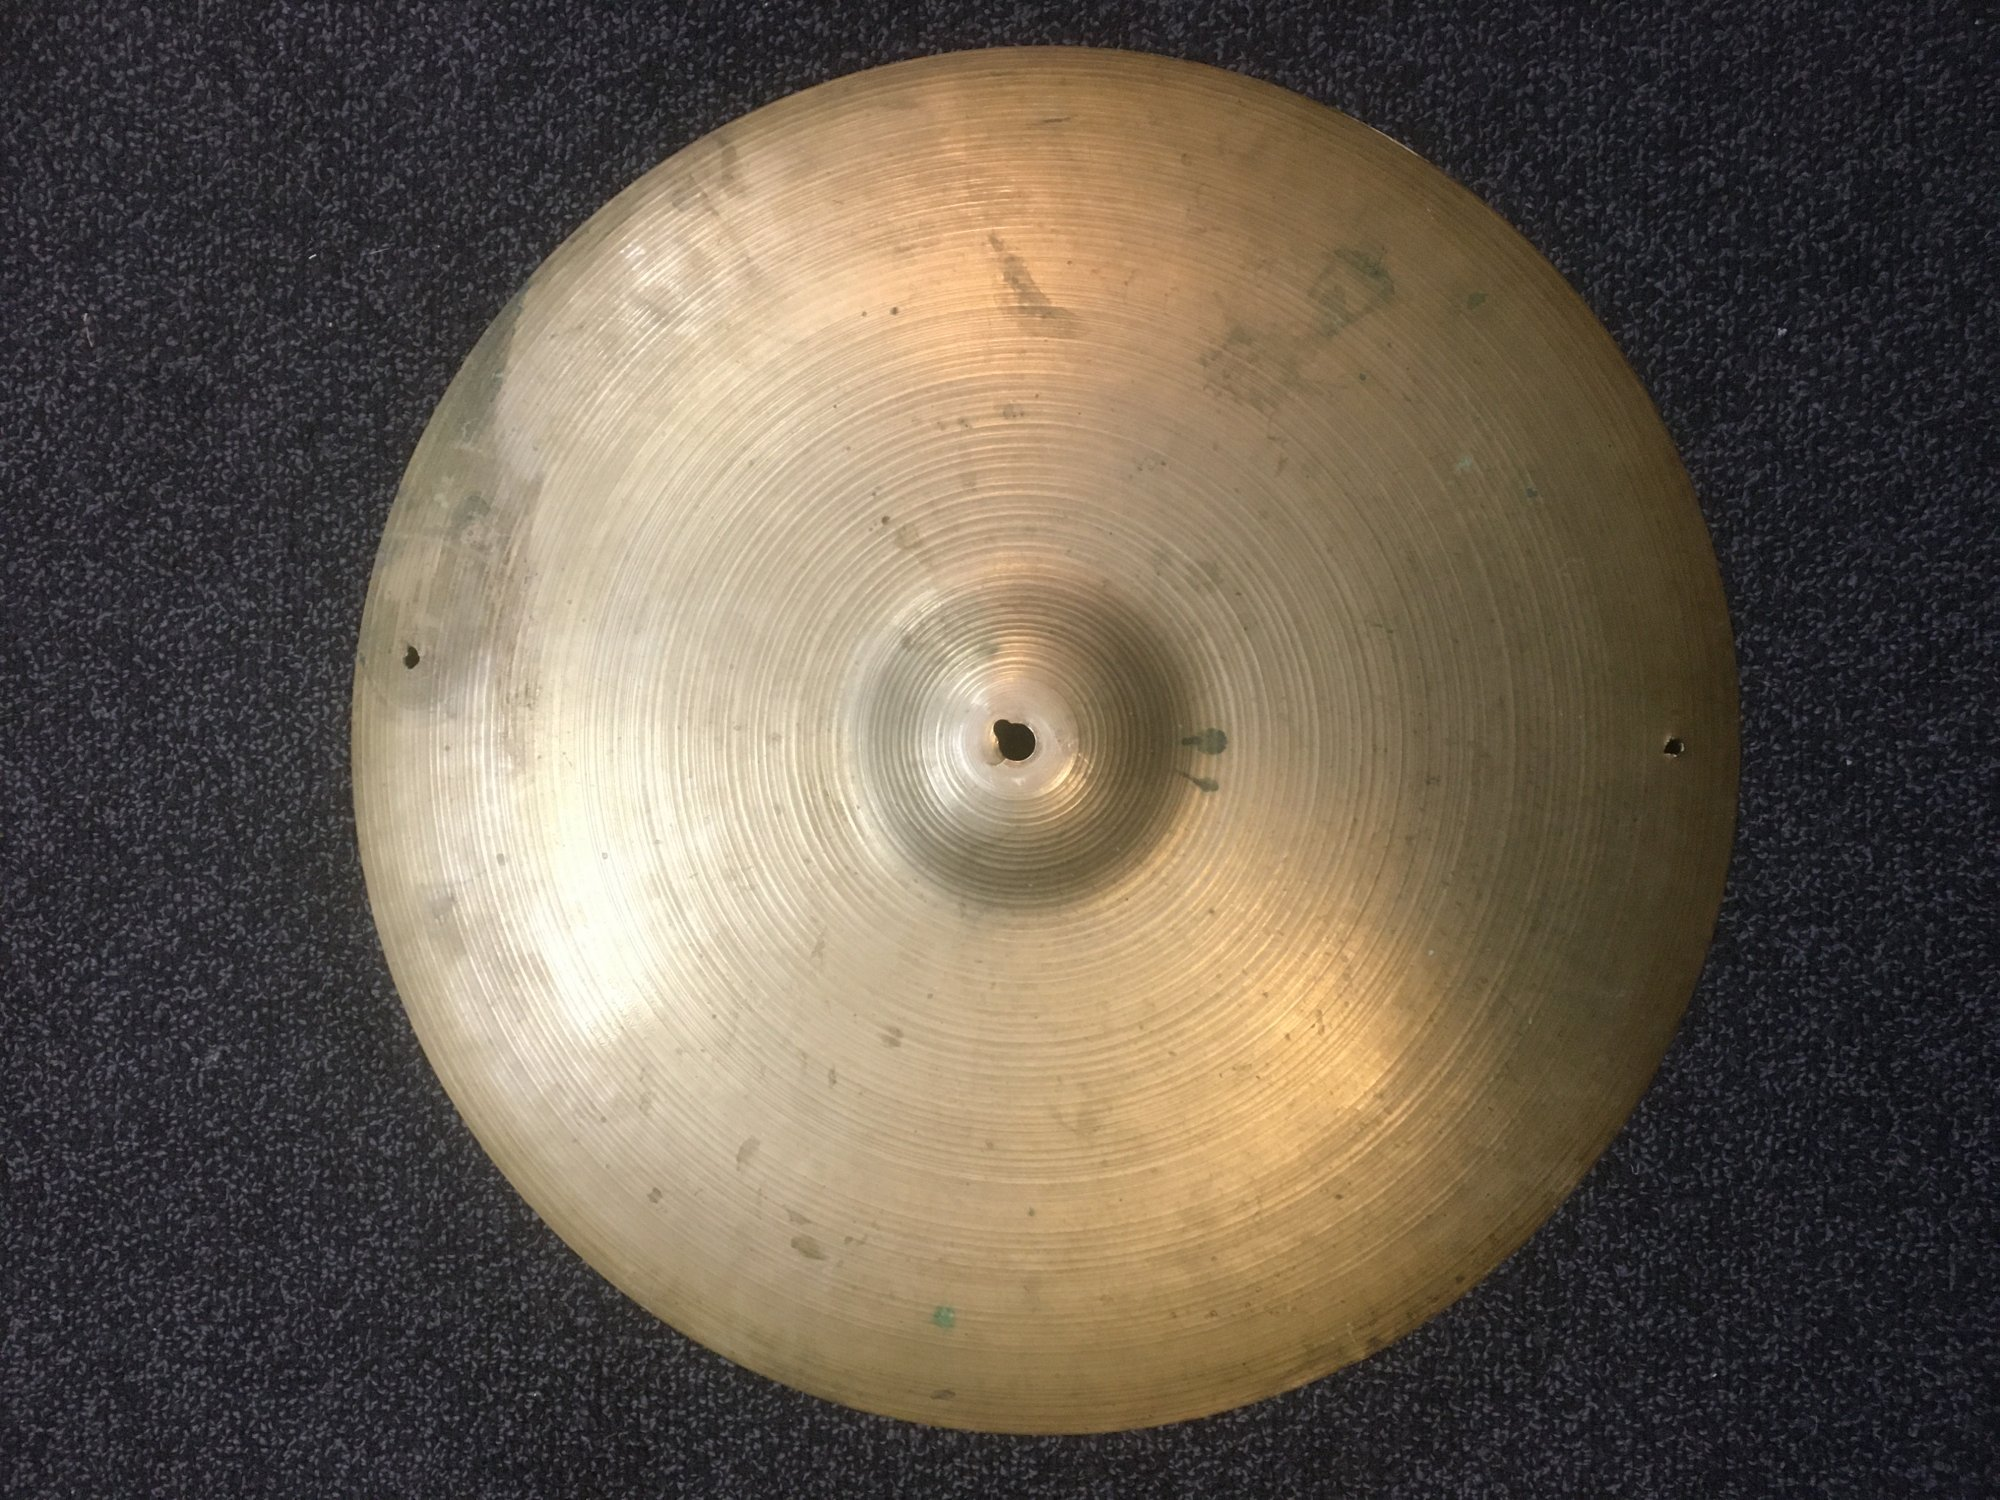 Zildjian 20 Cymbal-USED not sure what model